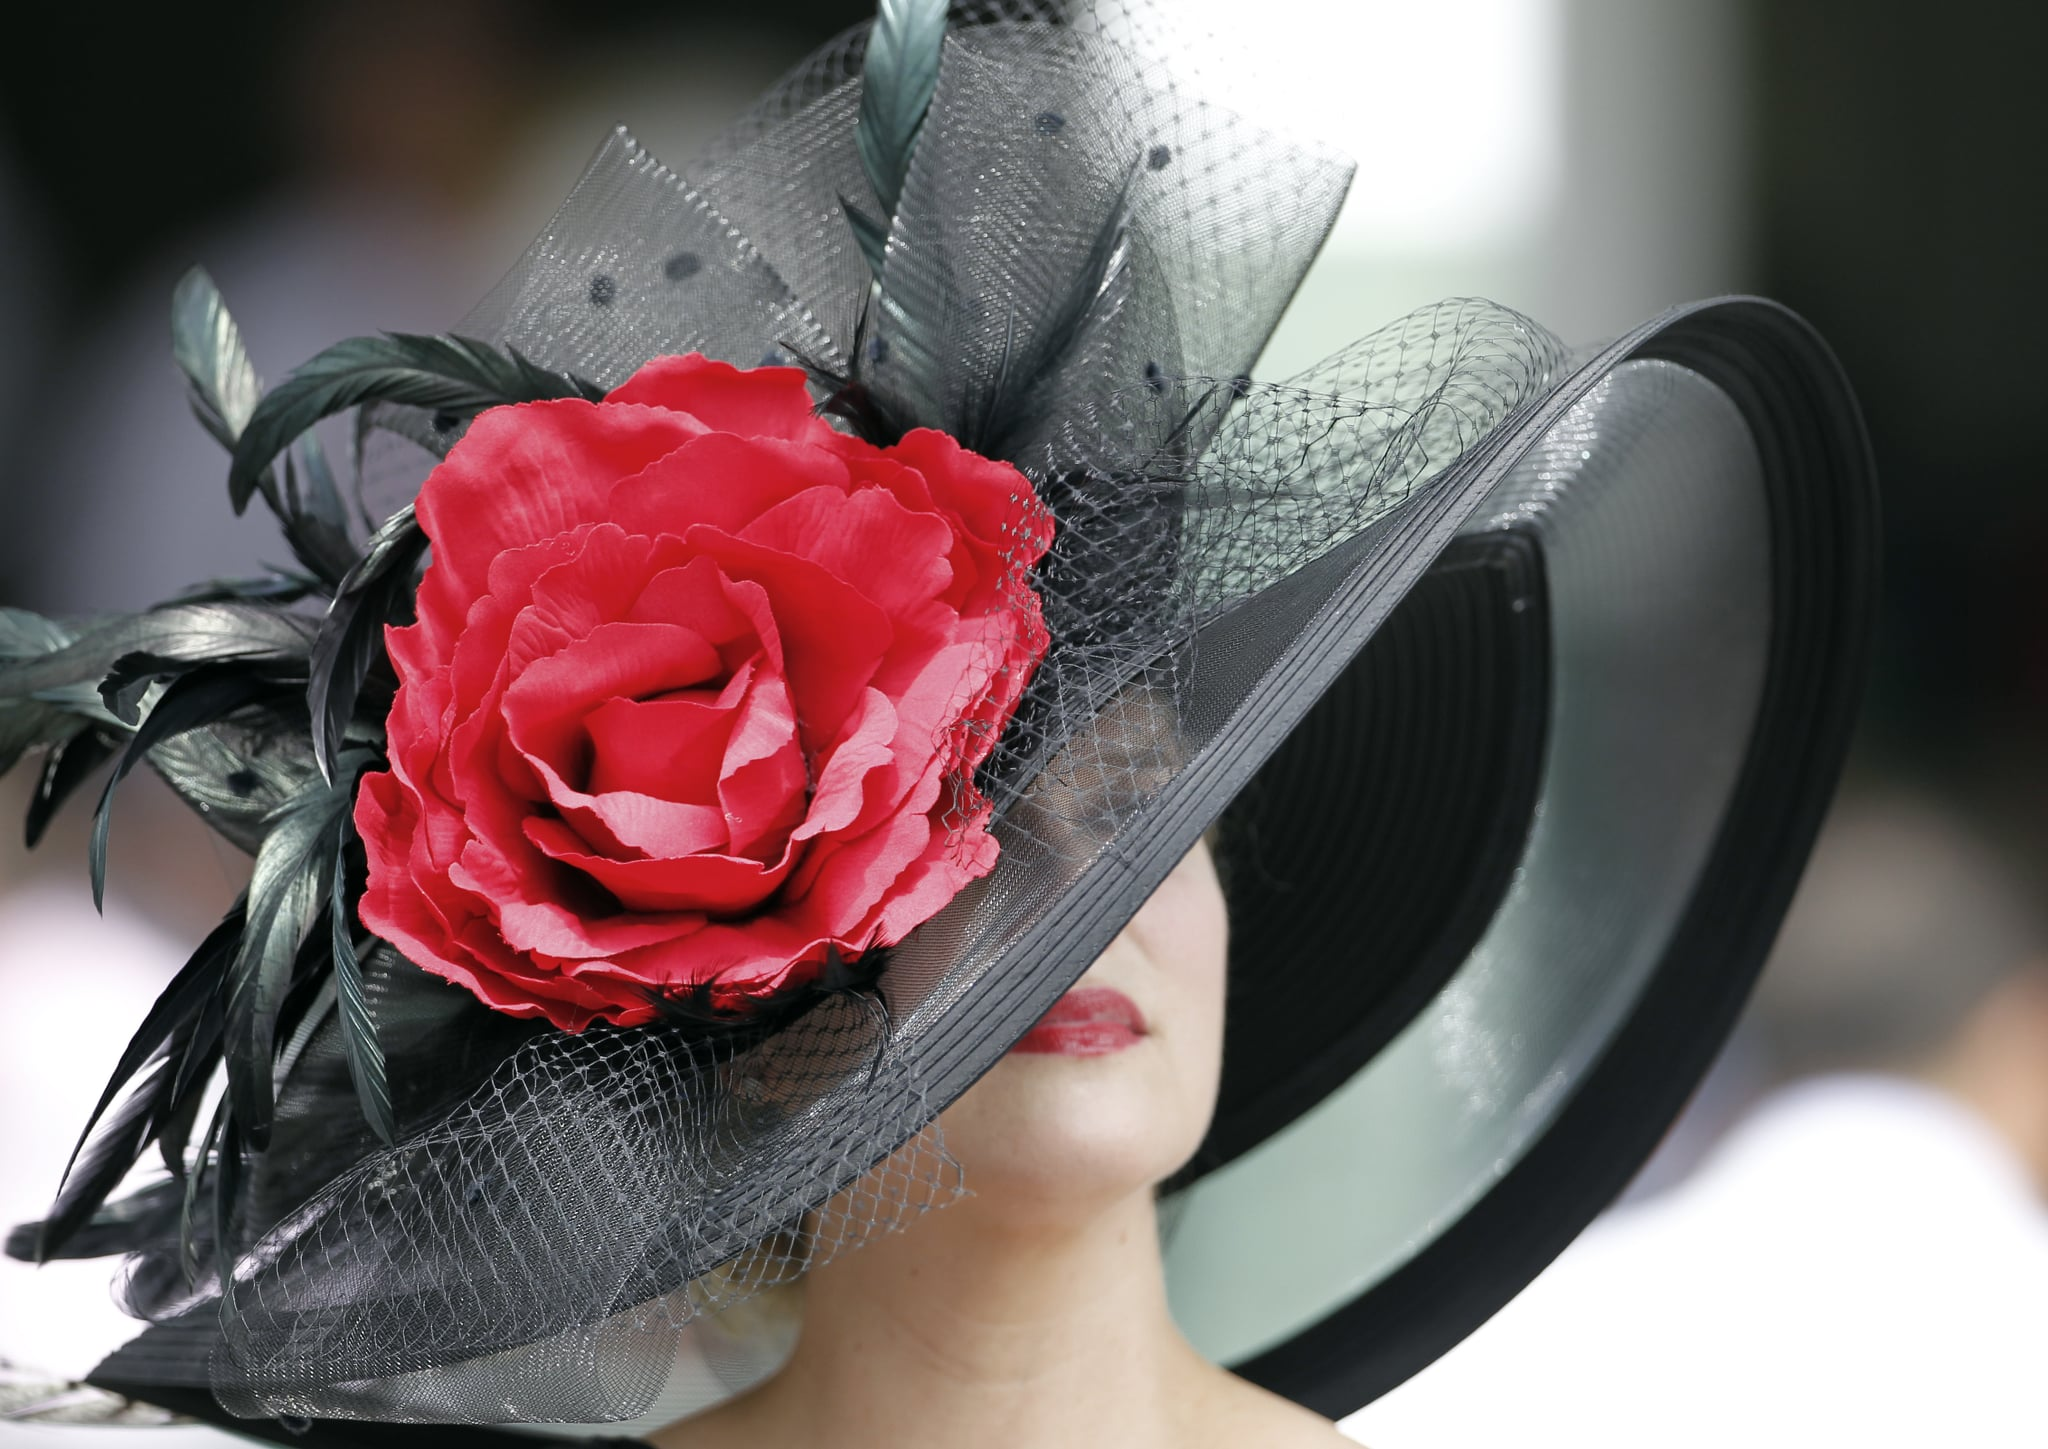 A woman went dramatic with her black and red hat in 2012.